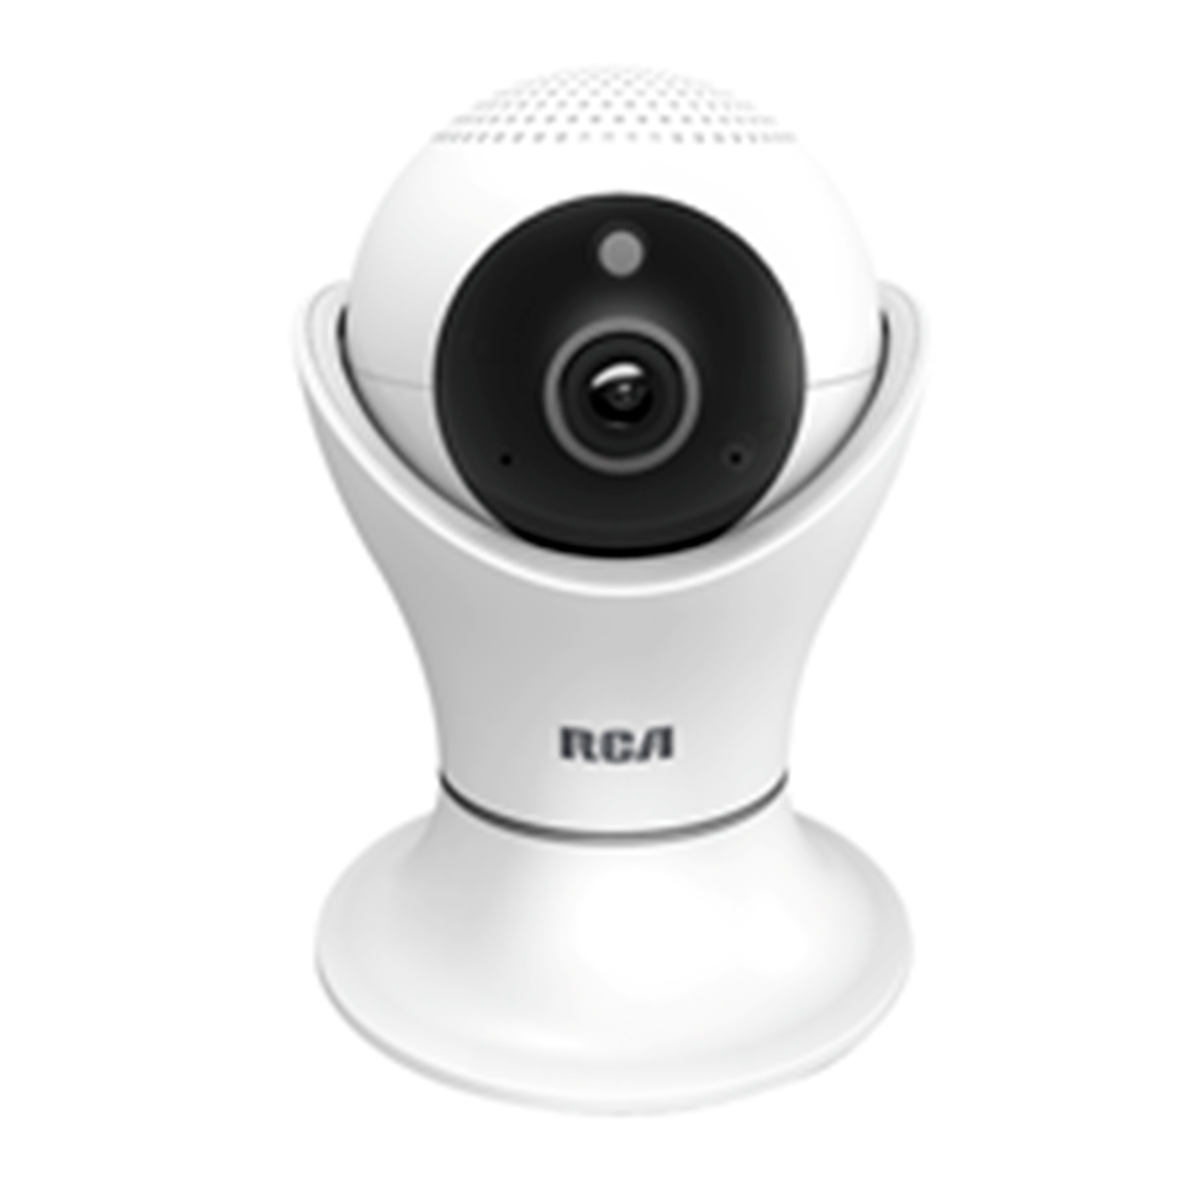 Cámara Inalámbrica IP RCA RC201 / Full HD / WiFi